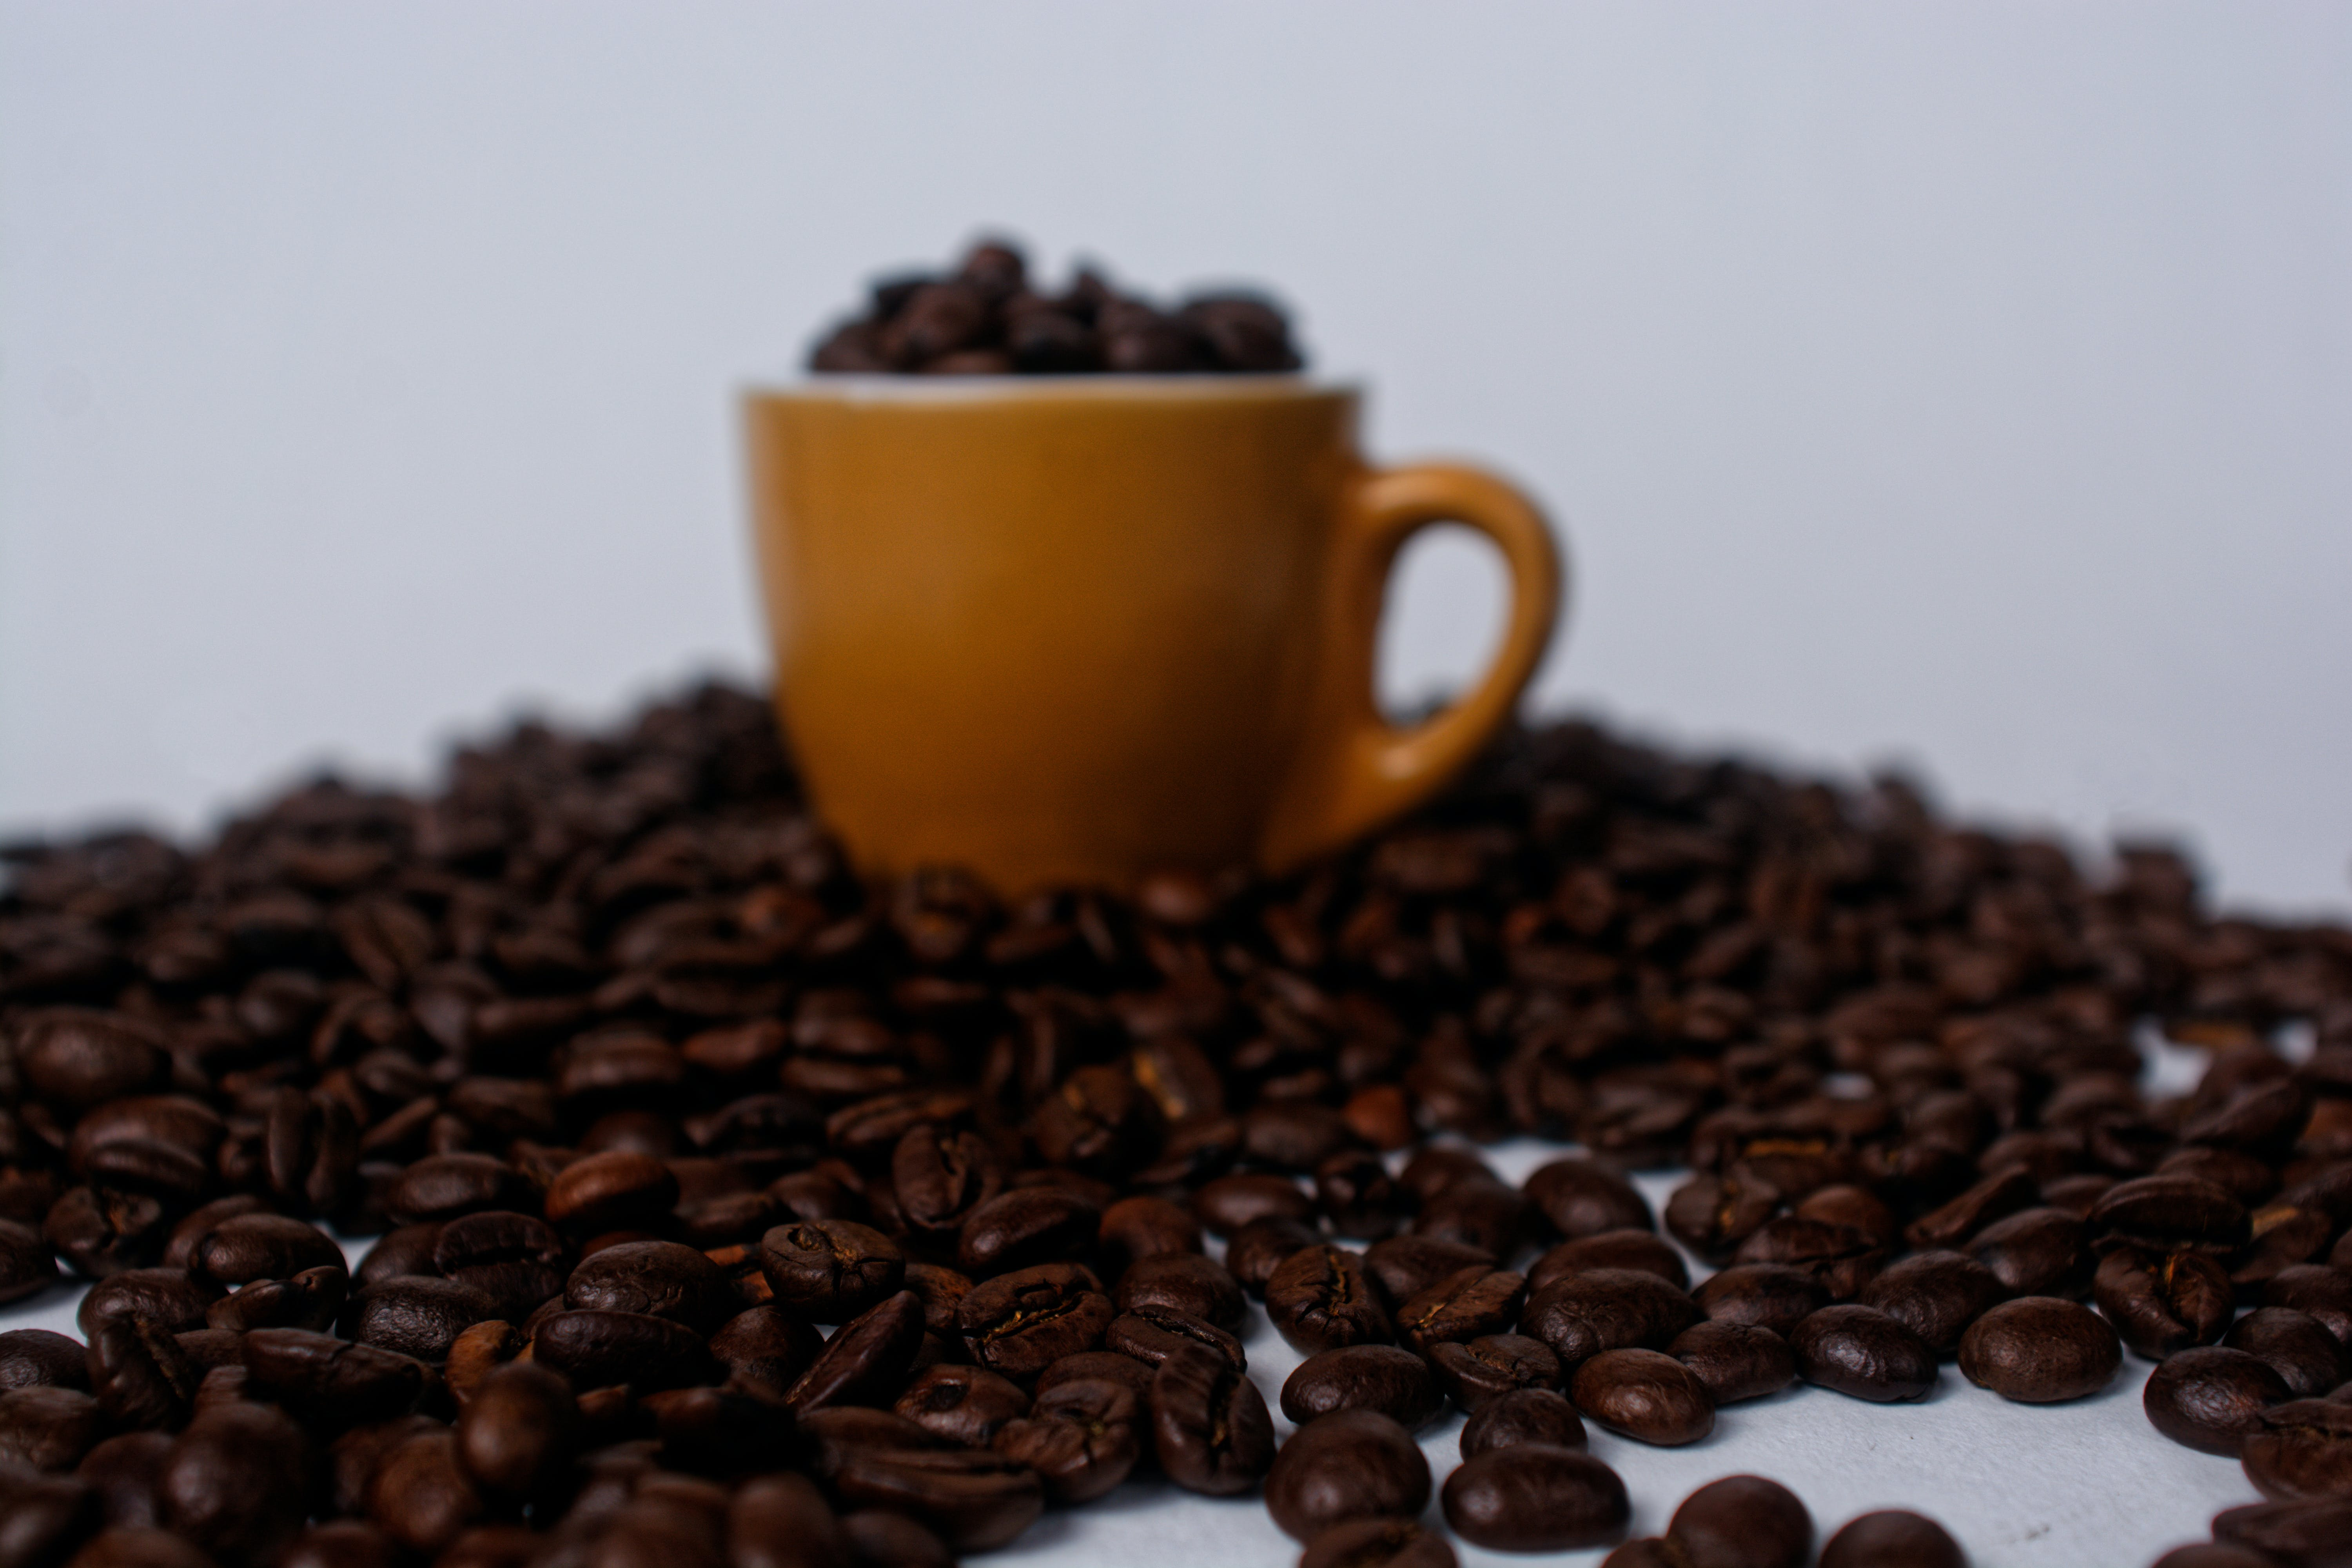 Brown Mug Filled With Coffee Beans